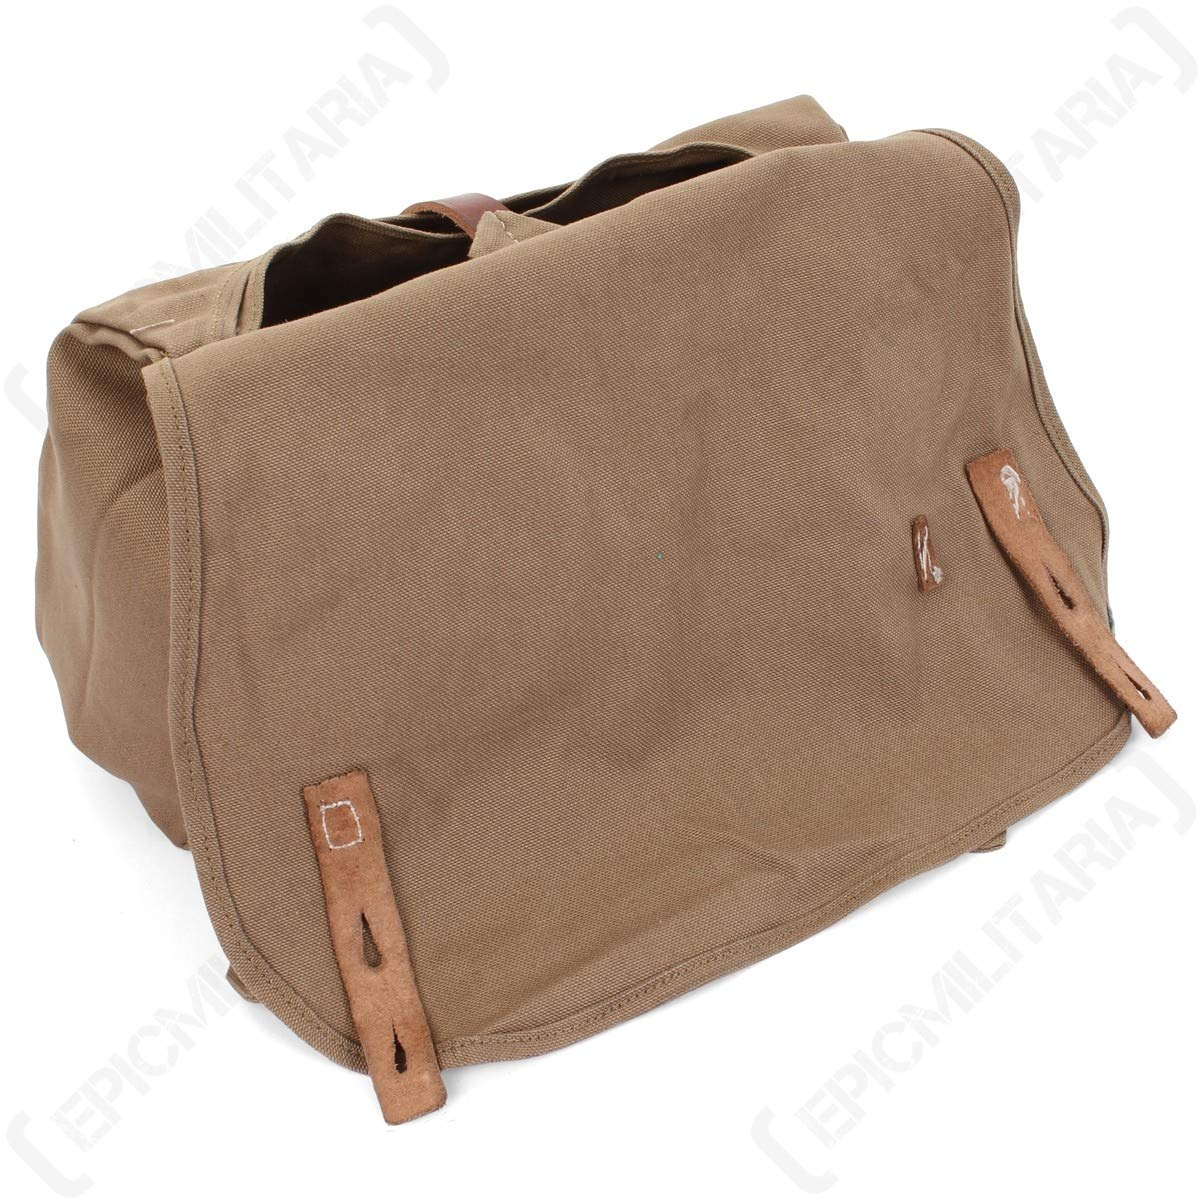 Epic Militaria Replica WW2 German WW1 Bread Bag